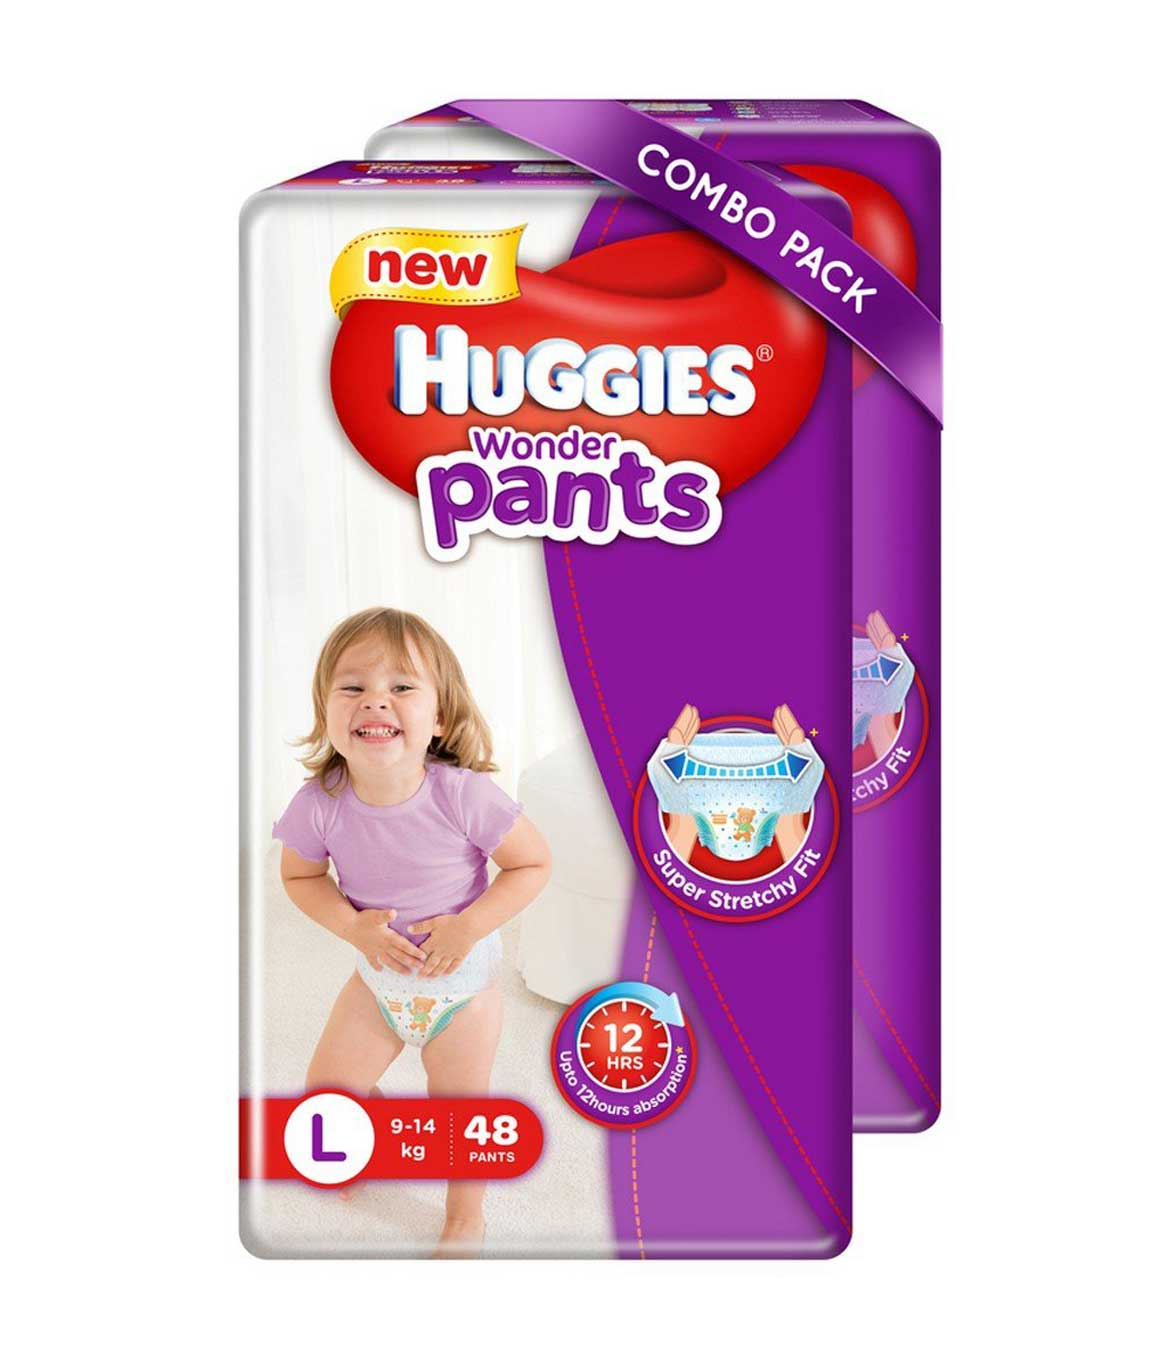 Huggies Wonder Pants Large Size Diapers (Pack of 2, 48 Counts)